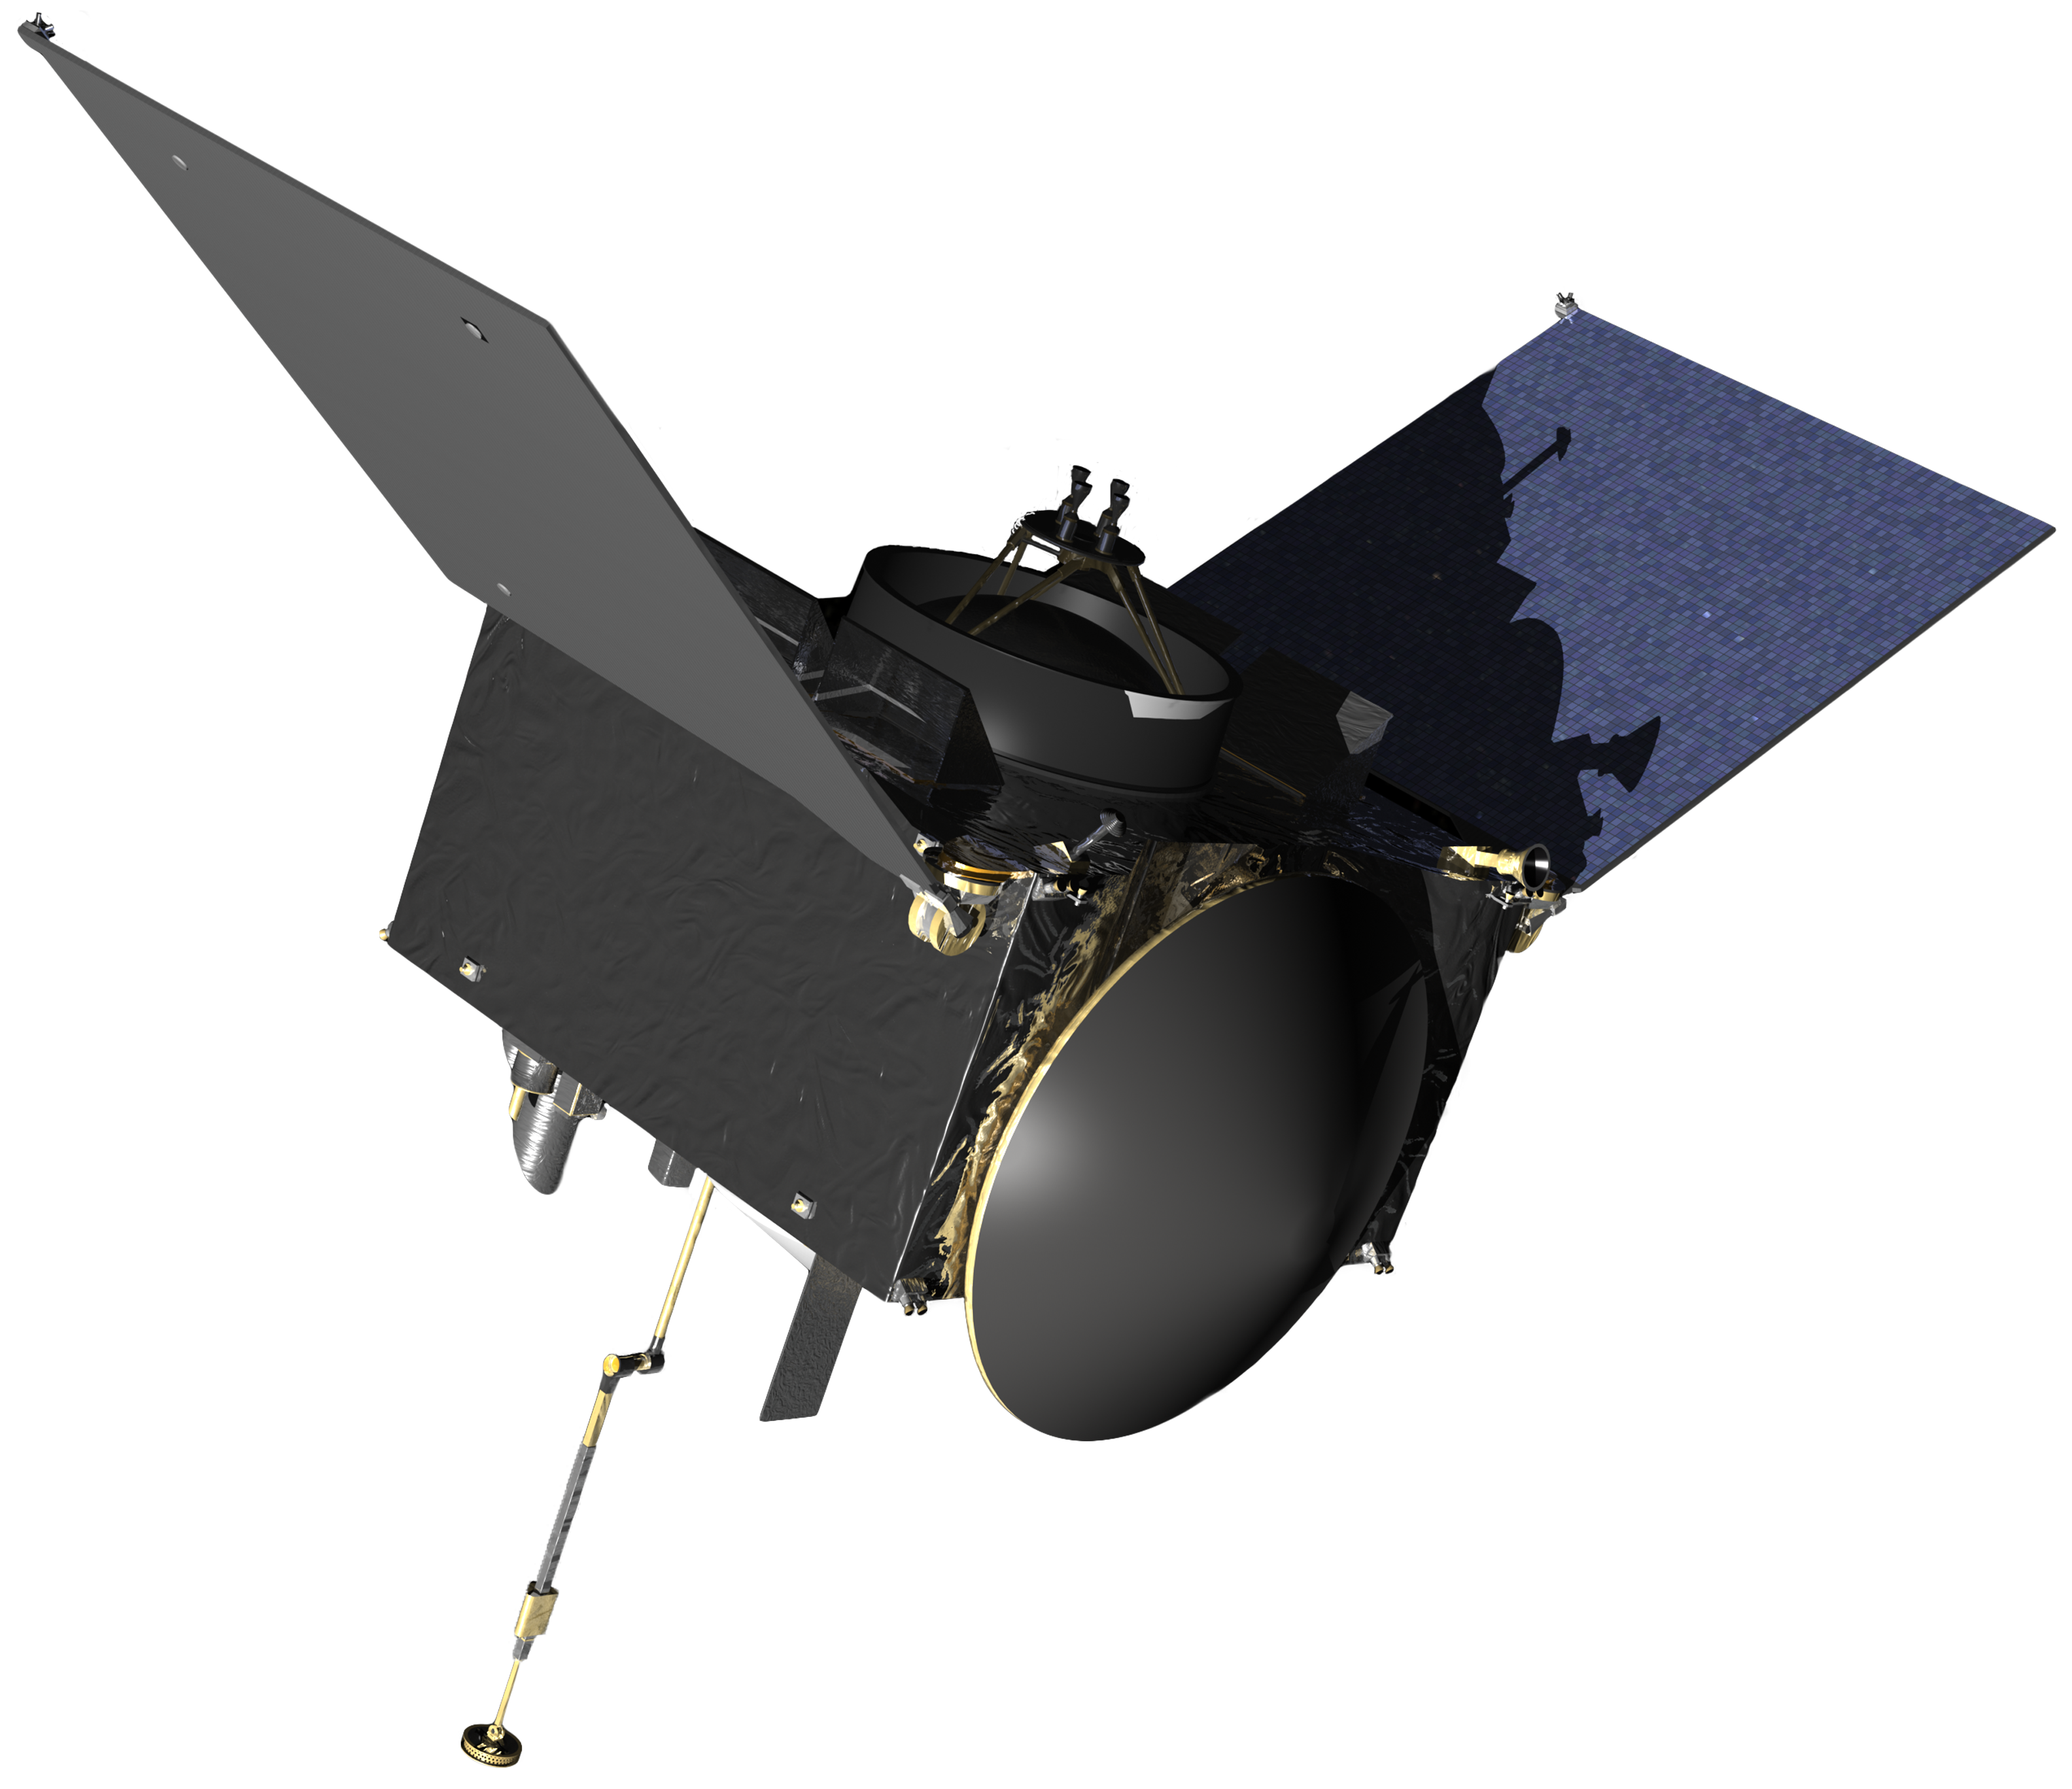 Best Free Spacecraft Png Image image #40891